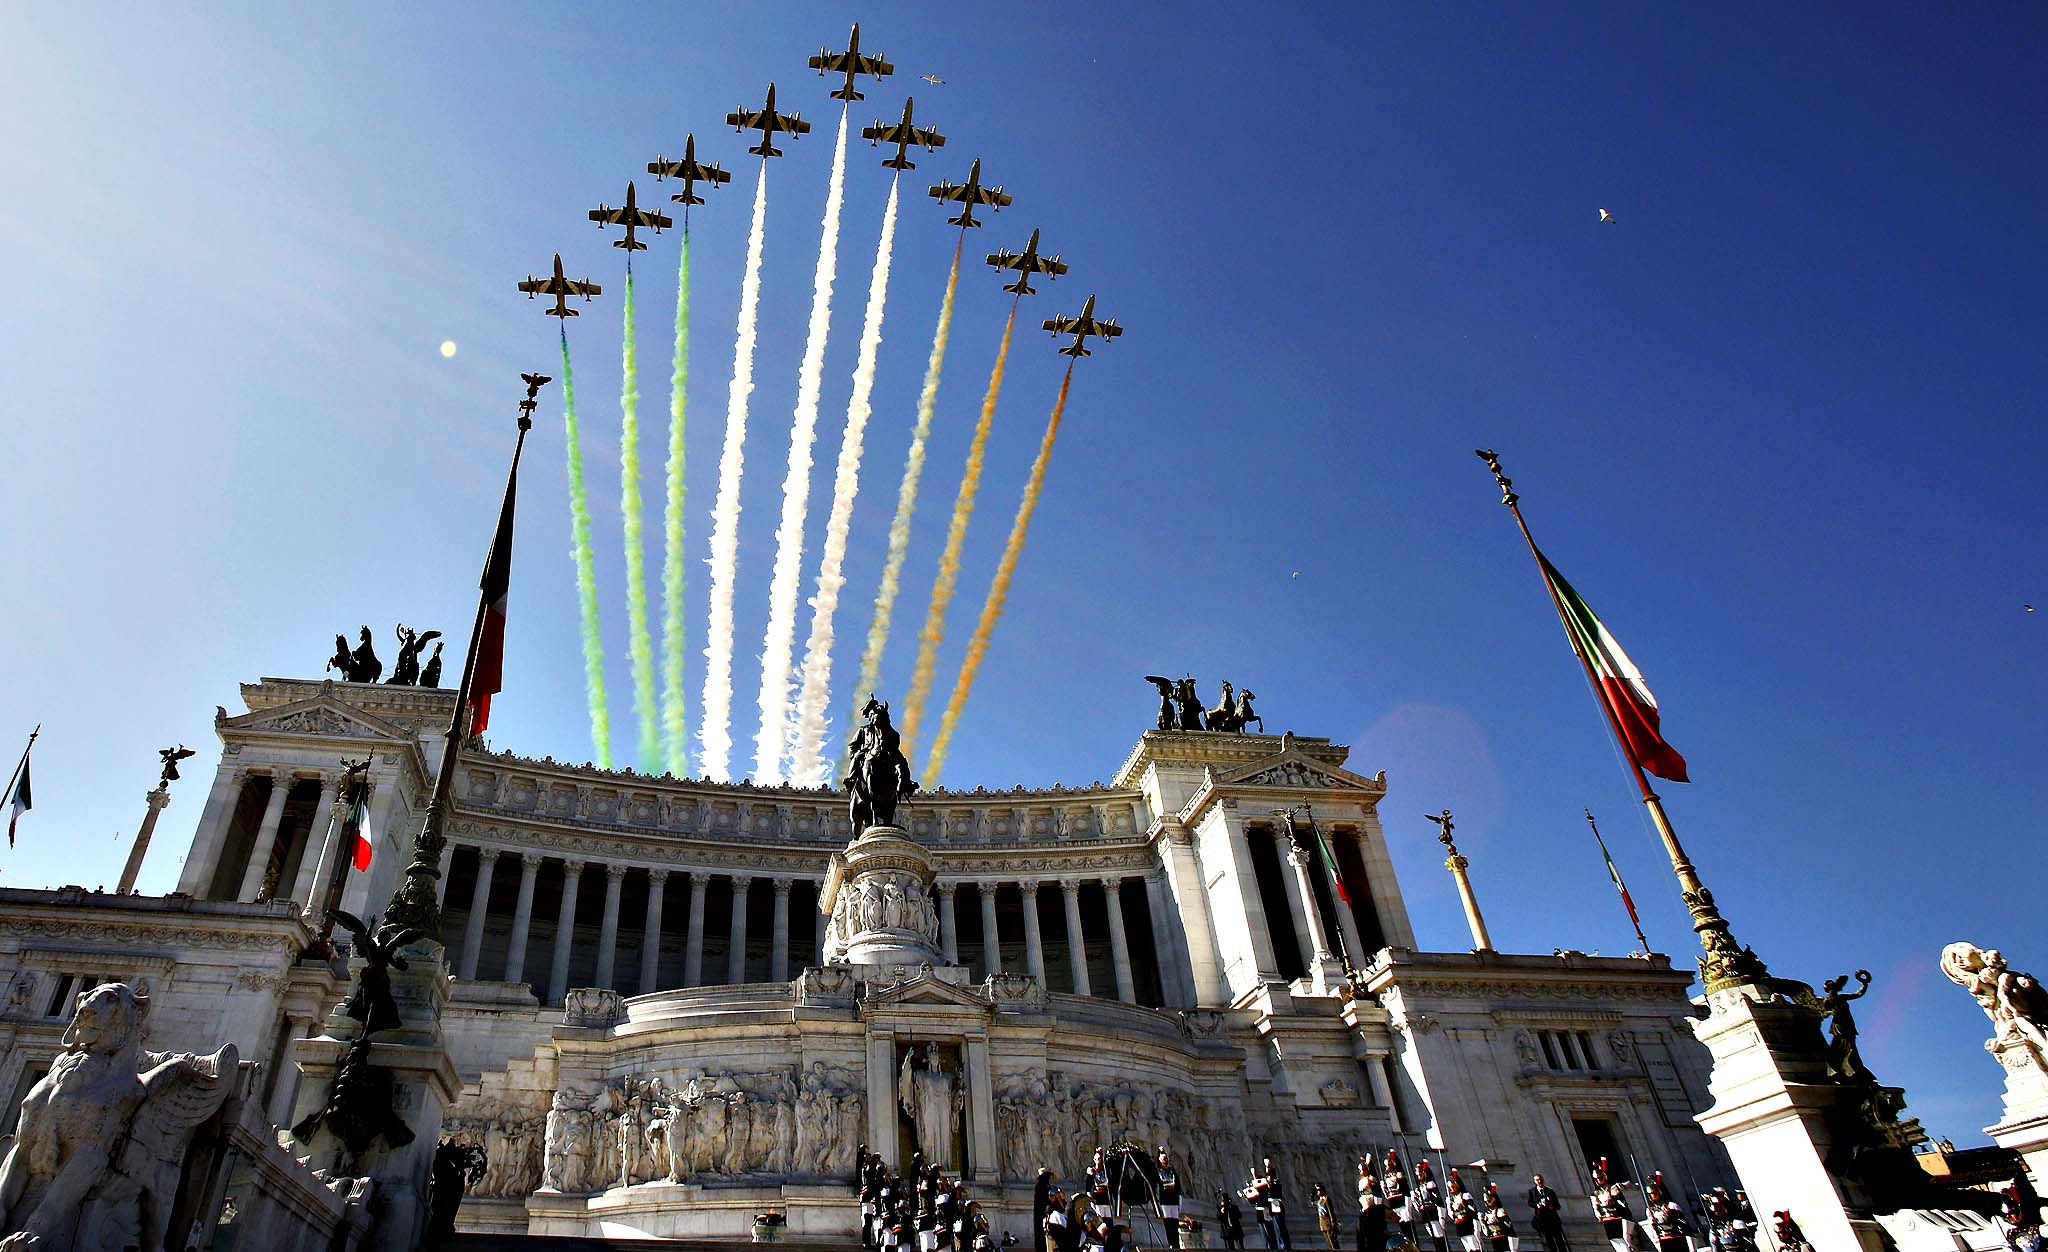 """The Frecce Tricolori (three-color arrows) Italian Air Force acrobatic squad fly above the """"Vittoriano"""", the Unknown Soldier monument, on the occasion of the Republic Day military parade, in Rome, Monday, June 2, 2014. The Republic Day marks the anniversary of the birth of the Italian Republic after a referendum held on June 2, 1946 in which Italians chose the form of government between monarchy and republic following WWII."""